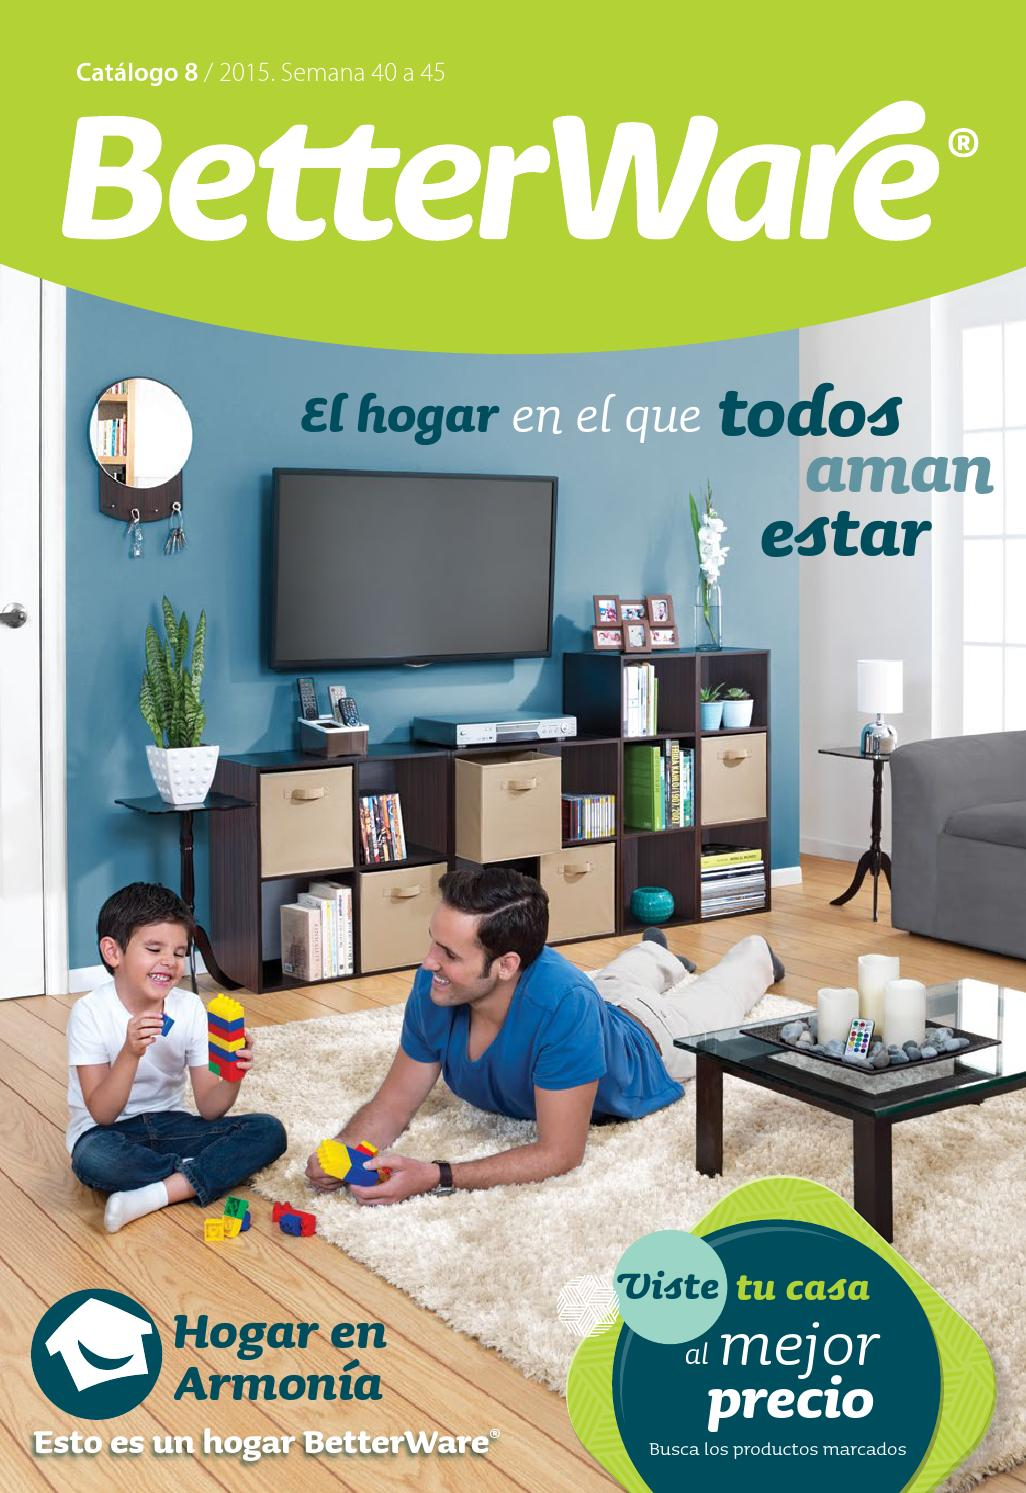 Betterware catalogo 8 2015 by magda esquivel issuu for Catalogo casa